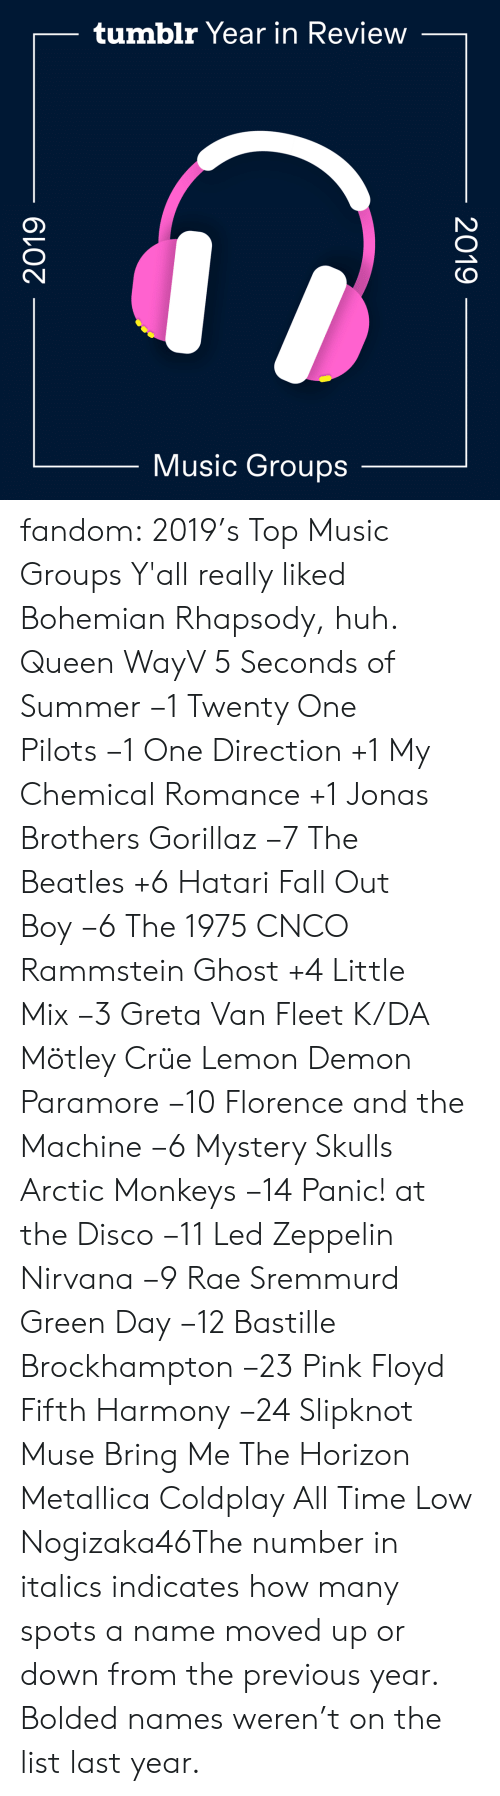 Metallica: tumblr Year in Review  Music Groups  2019  2019 fandom:  2019's Top Music Groups  Y'all really liked Bohemian Rhapsody, huh.  Queen  WayV  5 Seconds of Summer −1  Twenty One Pilots −1  One Direction +1  My Chemical Romance +1  Jonas Brothers  Gorillaz −7  The Beatles +6  Hatari  Fall Out Boy −6  The 1975  CNCO  Rammstein  Ghost +4  Little Mix −3  Greta Van Fleet  K/DA  Mötley Crüe  Lemon Demon  Paramore −10  Florence and the Machine −6  Mystery Skulls  Arctic Monkeys −14  Panic! at the Disco −11  Led Zeppelin   Nirvana −9  Rae Sremmurd  Green Day −12  Bastille  Brockhampton −23  Pink Floyd  Fifth Harmony −24  Slipknot  Muse  Bring Me The Horizon  Metallica  Coldplay  All Time Low  Nogizaka46The number in italics indicates how many spots a name moved up or down from the previous year. Bolded names weren't on the list last year.